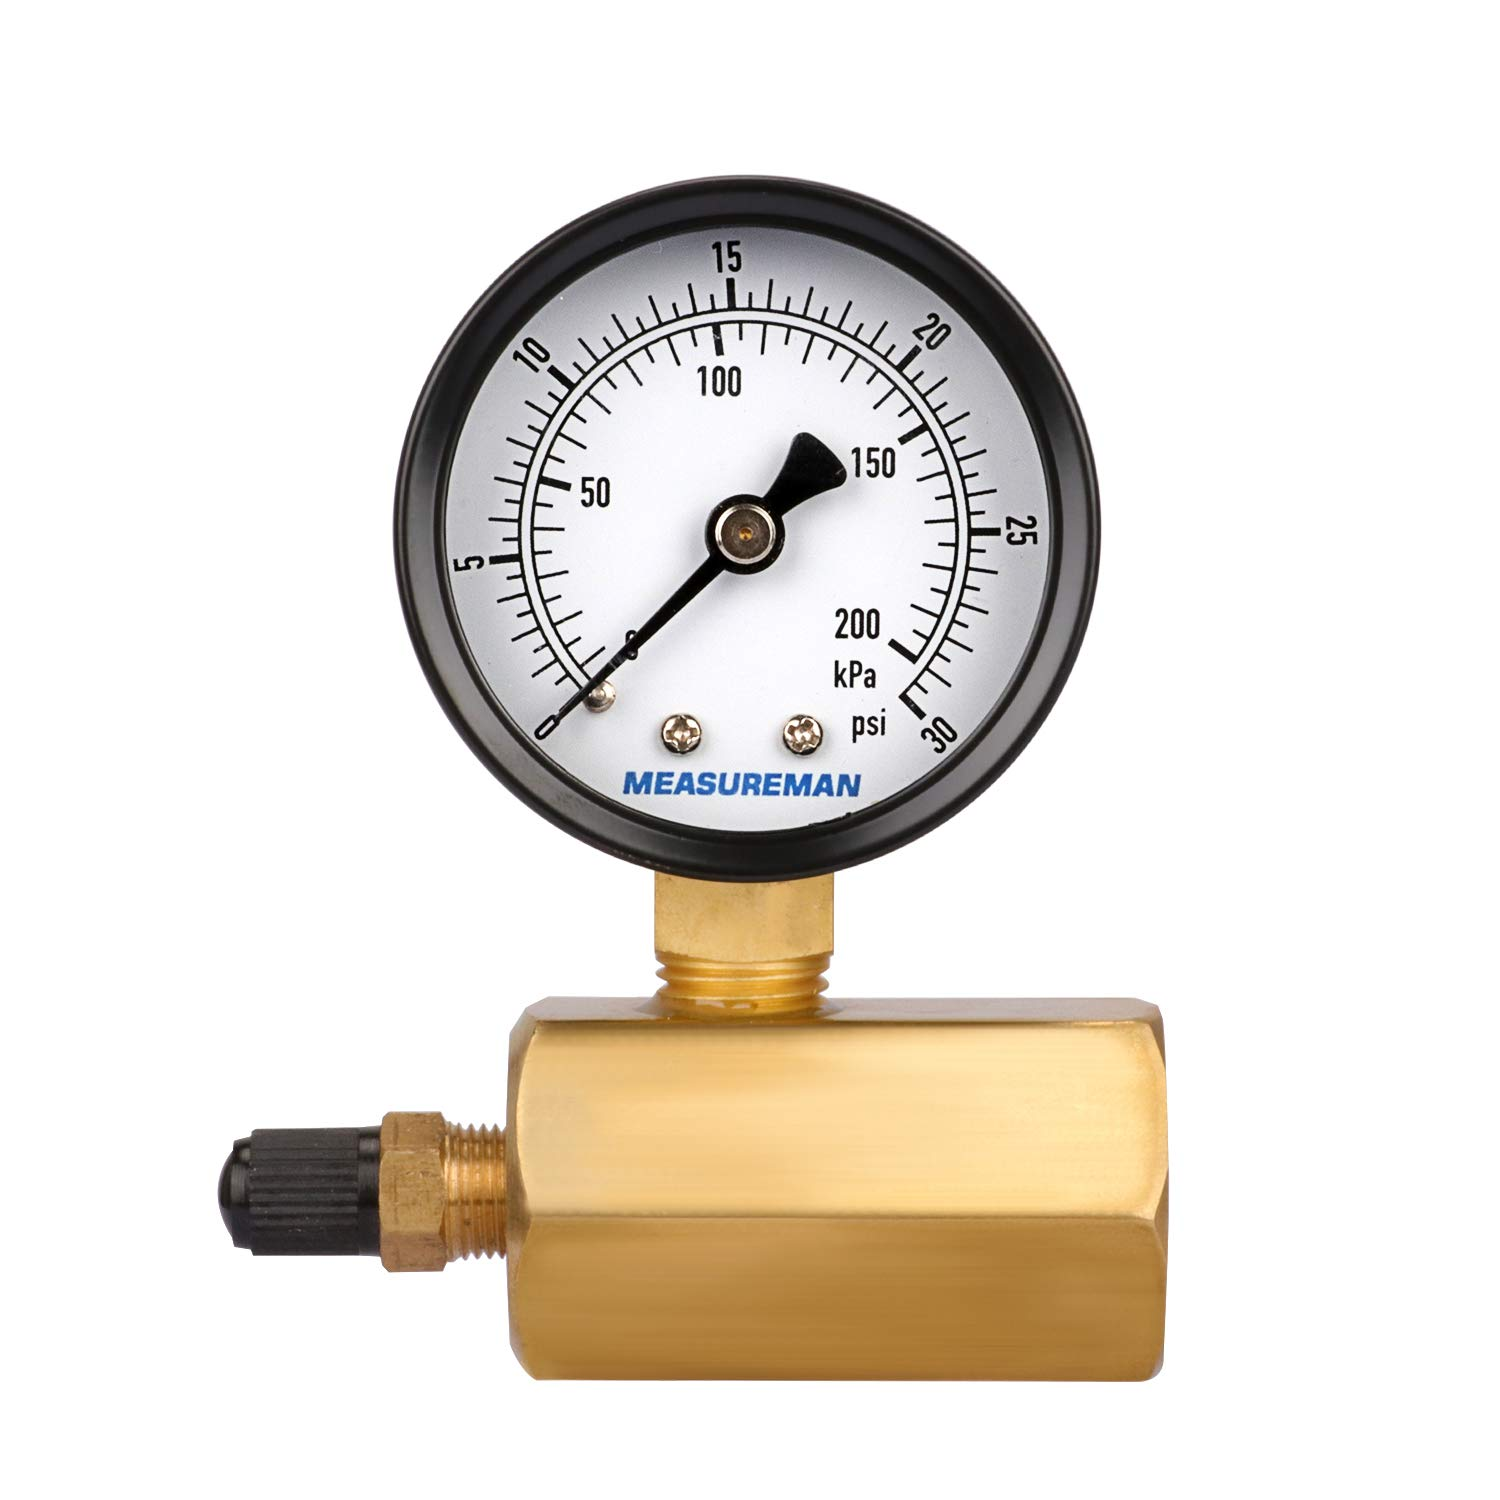 Measureman 2 Steel Gas Pressure Test Gauge Assembly 3//4 FNPT Connection 0-30 psi//kpa 3-2-3/% Accuracy